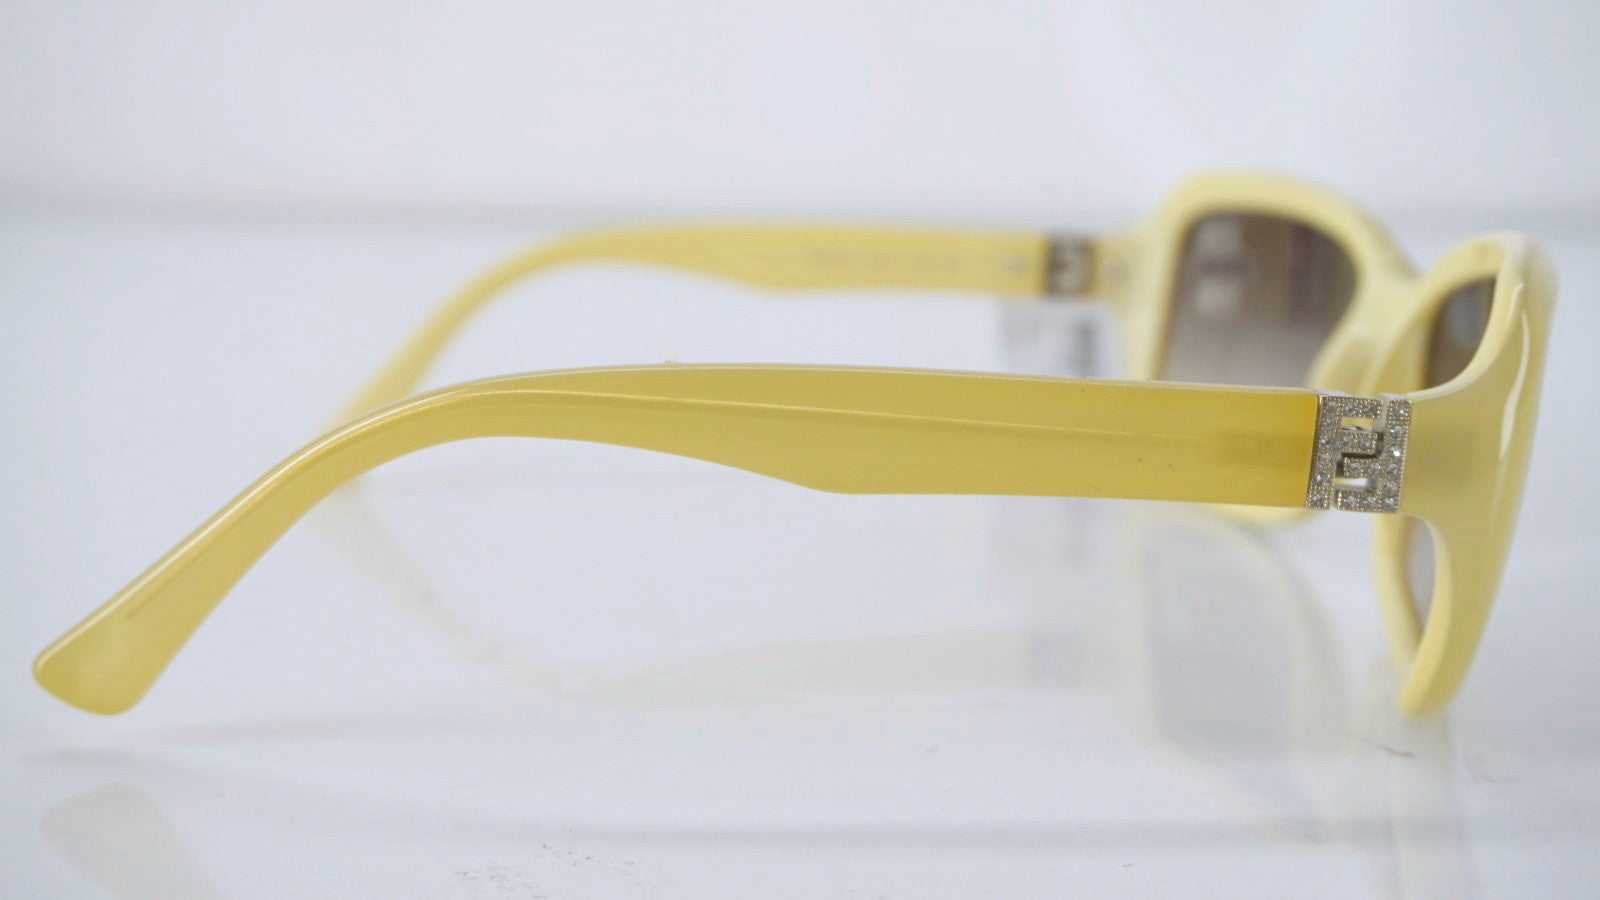 Fendi Embrace Cold Insert FS 5071R 58 15 799 125 Yellow Sunglasses New $665